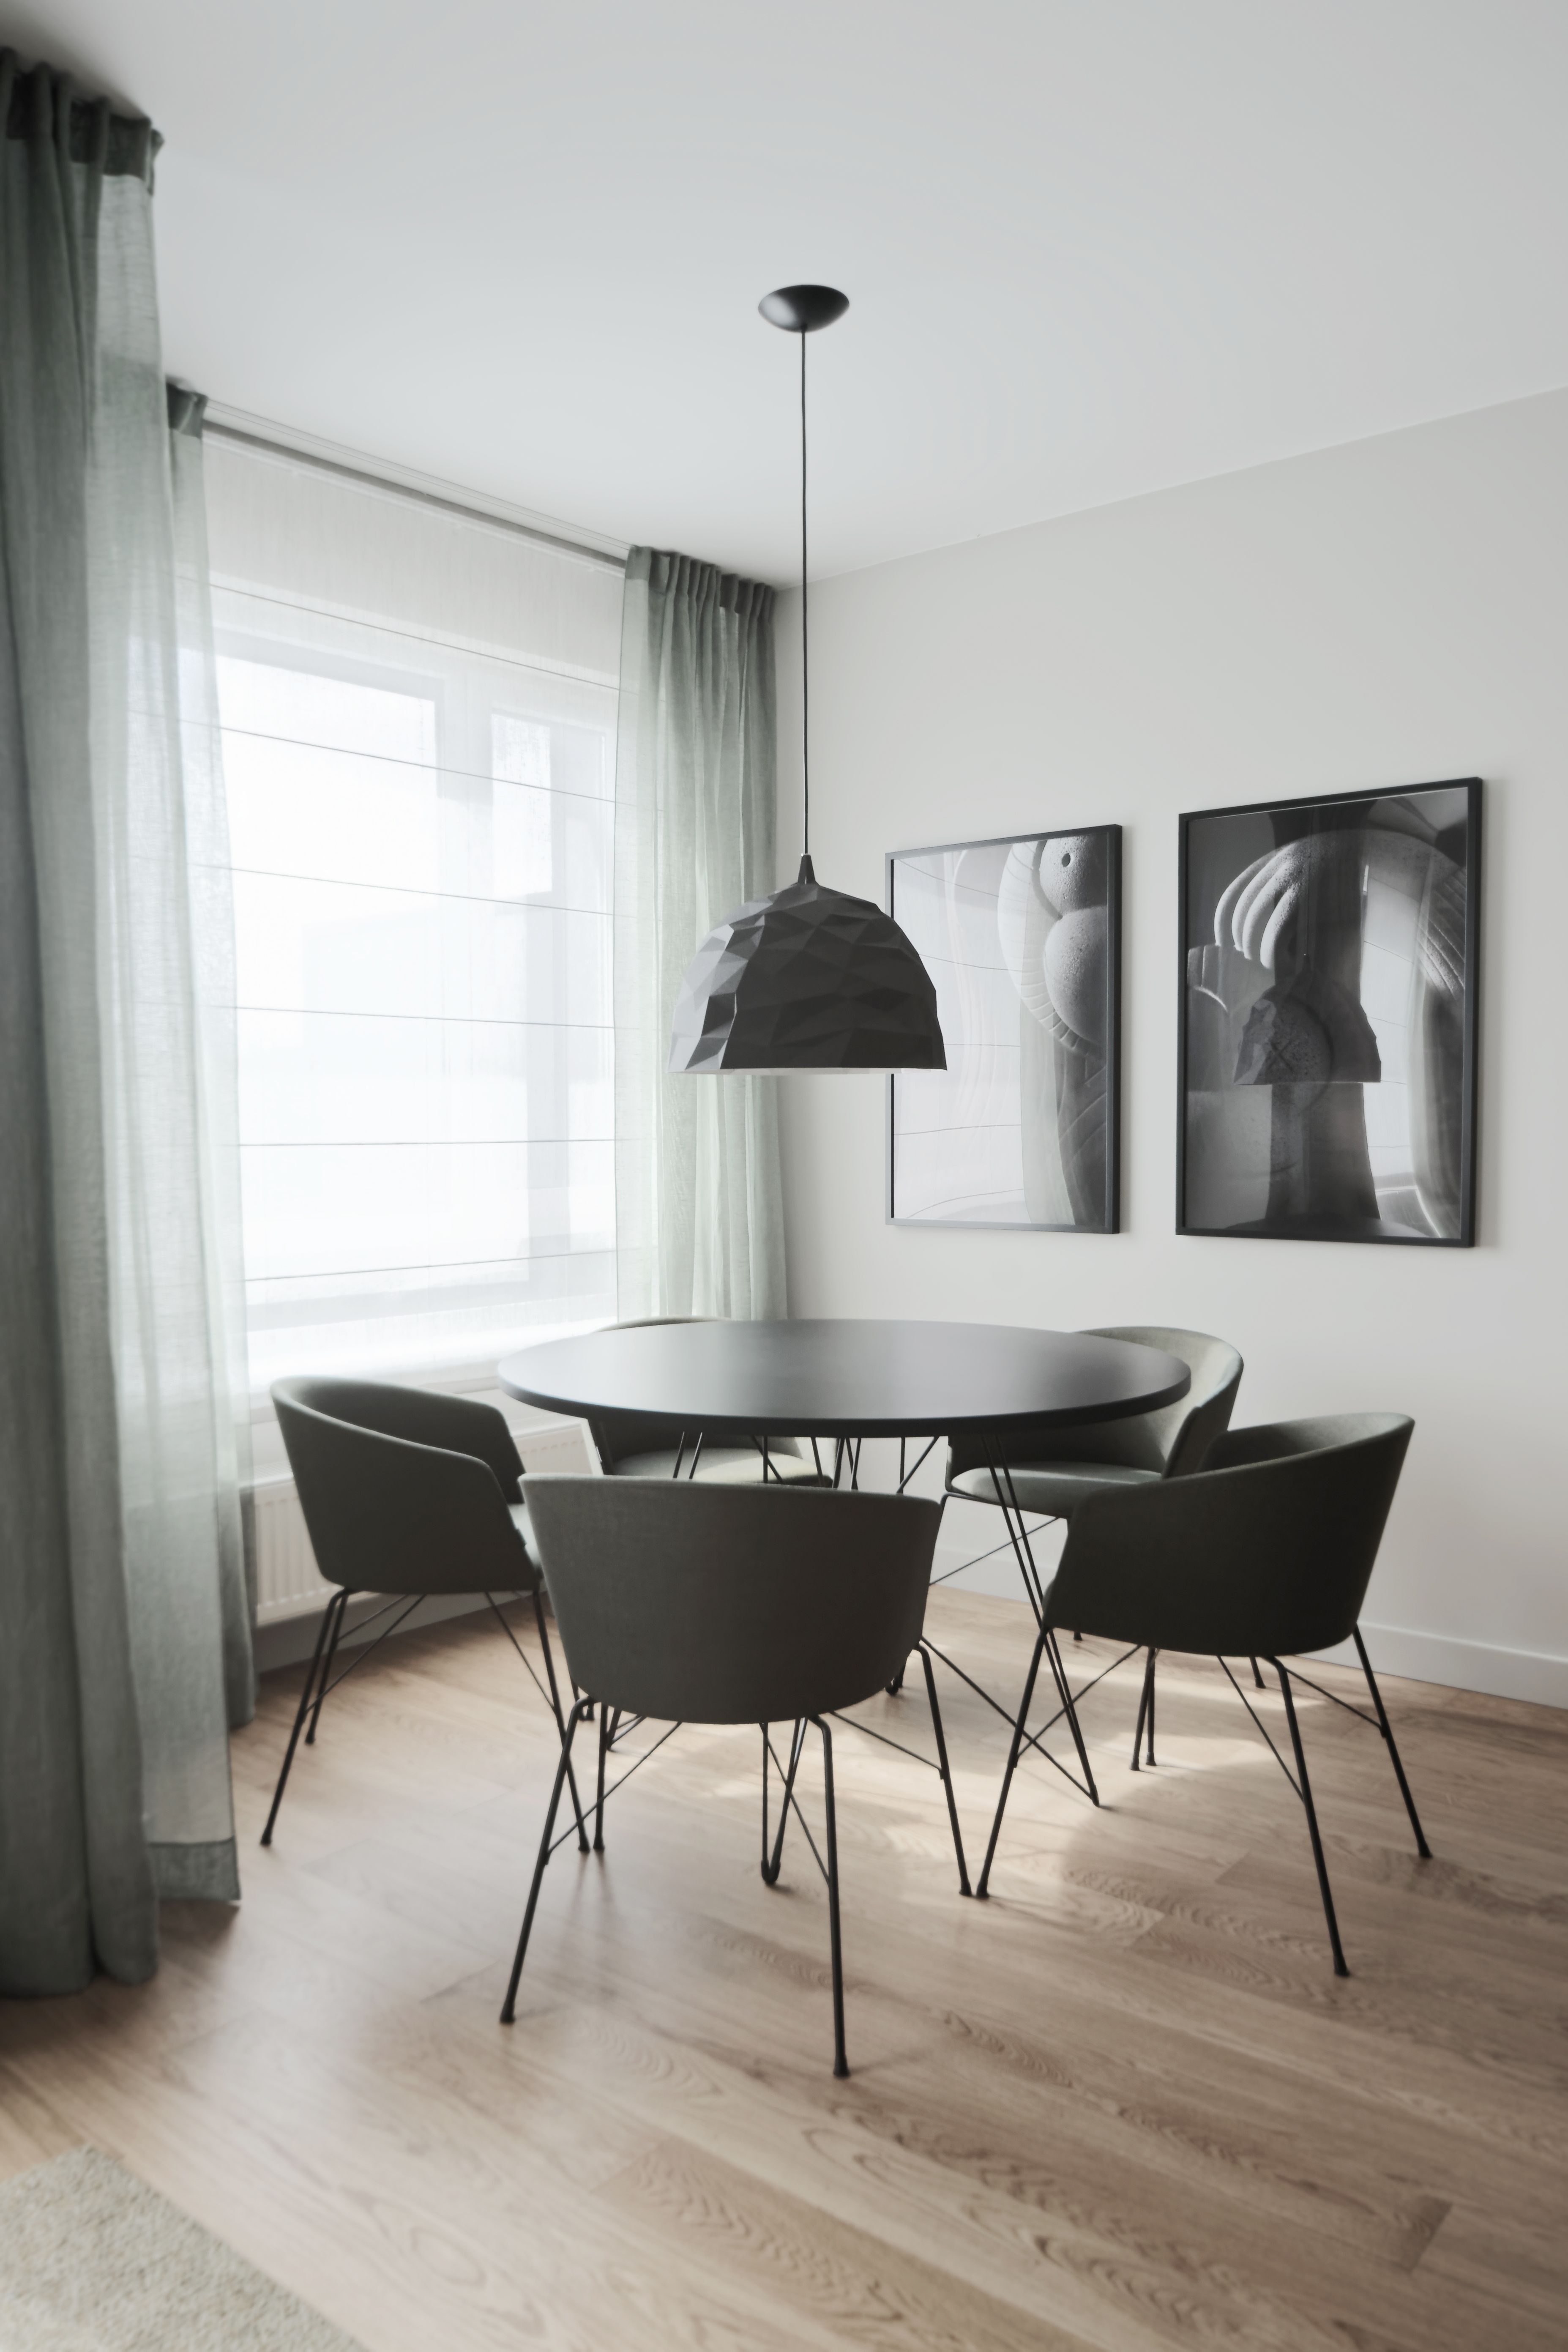 Modern interior design. MOON LIGHT CAPDEL chair. sel with ... on house electrical design, house ceiling design, house truss design, house frame design, house paint design, house beam design,